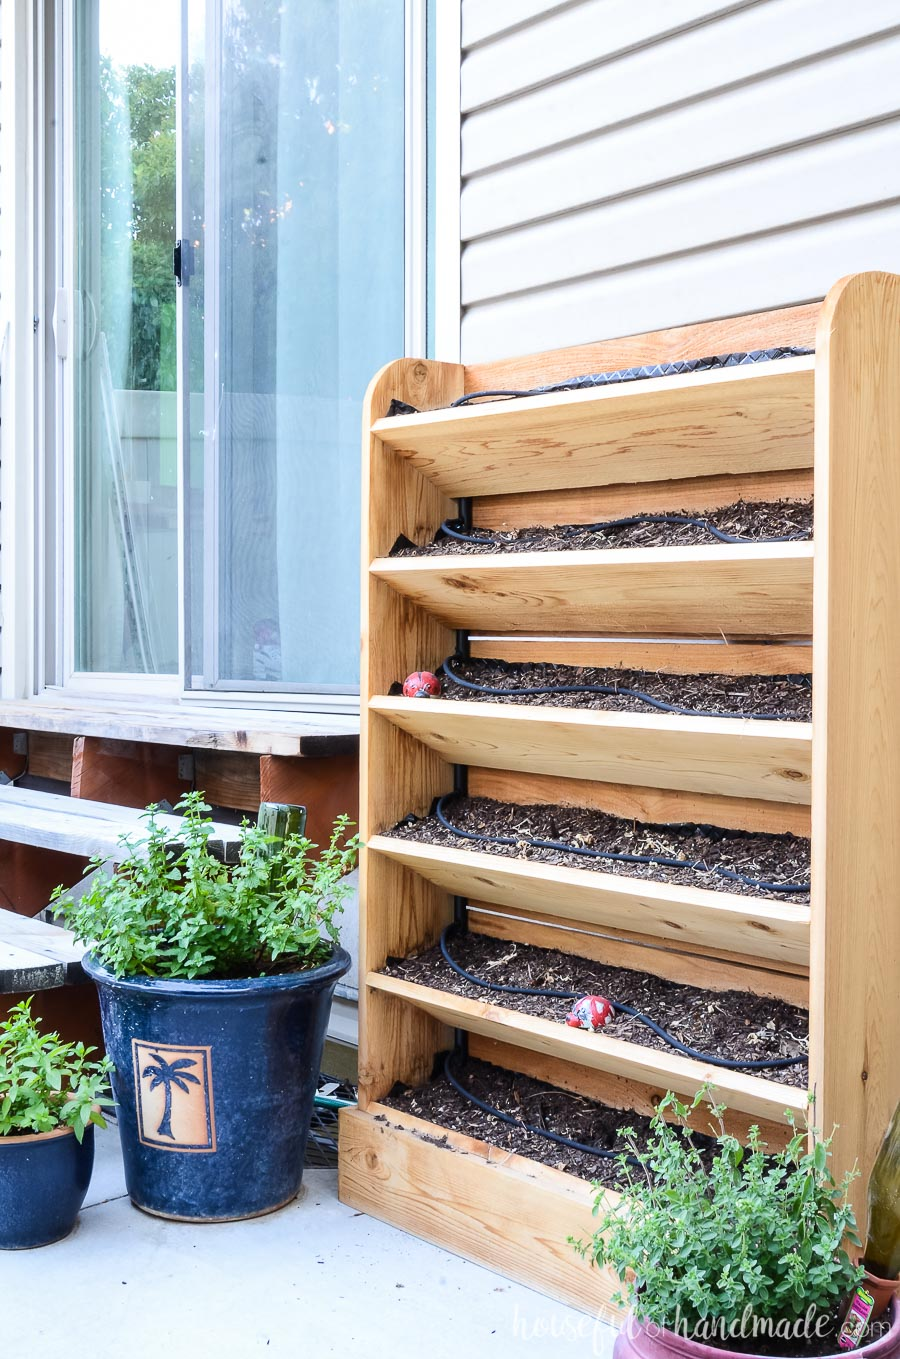 Vertical cedar herb garden and potted herbs make a great accompaniment to an outdoor kitchen area.